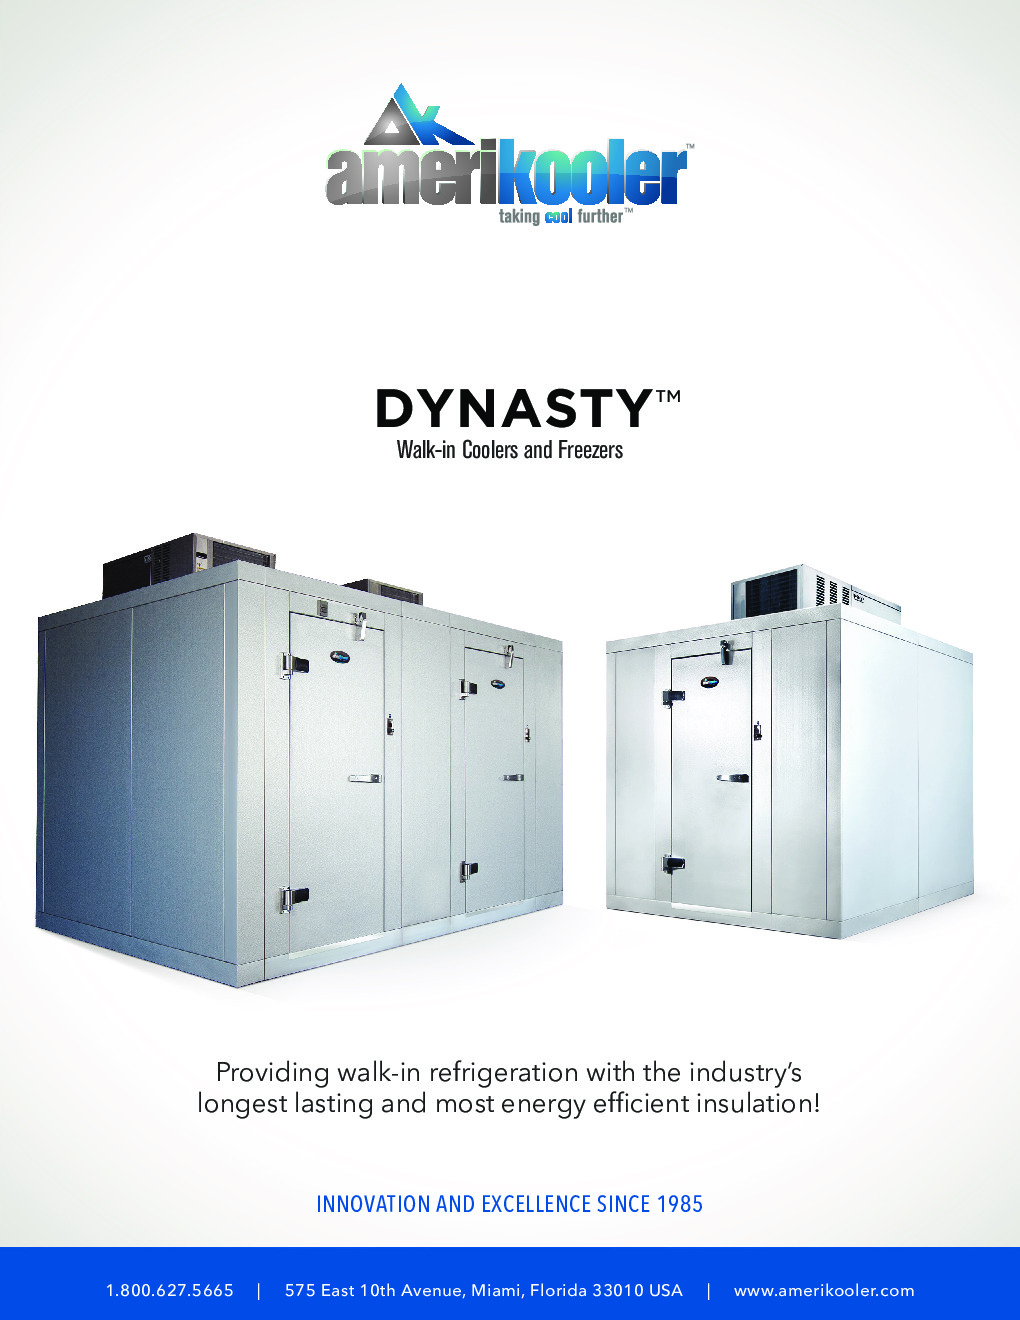 AmeriKooler DW090977F-4/5 Indoor 9' X 9' Walk-In, 5' L Cooler with Floor and 4' L Freezer, Box Only